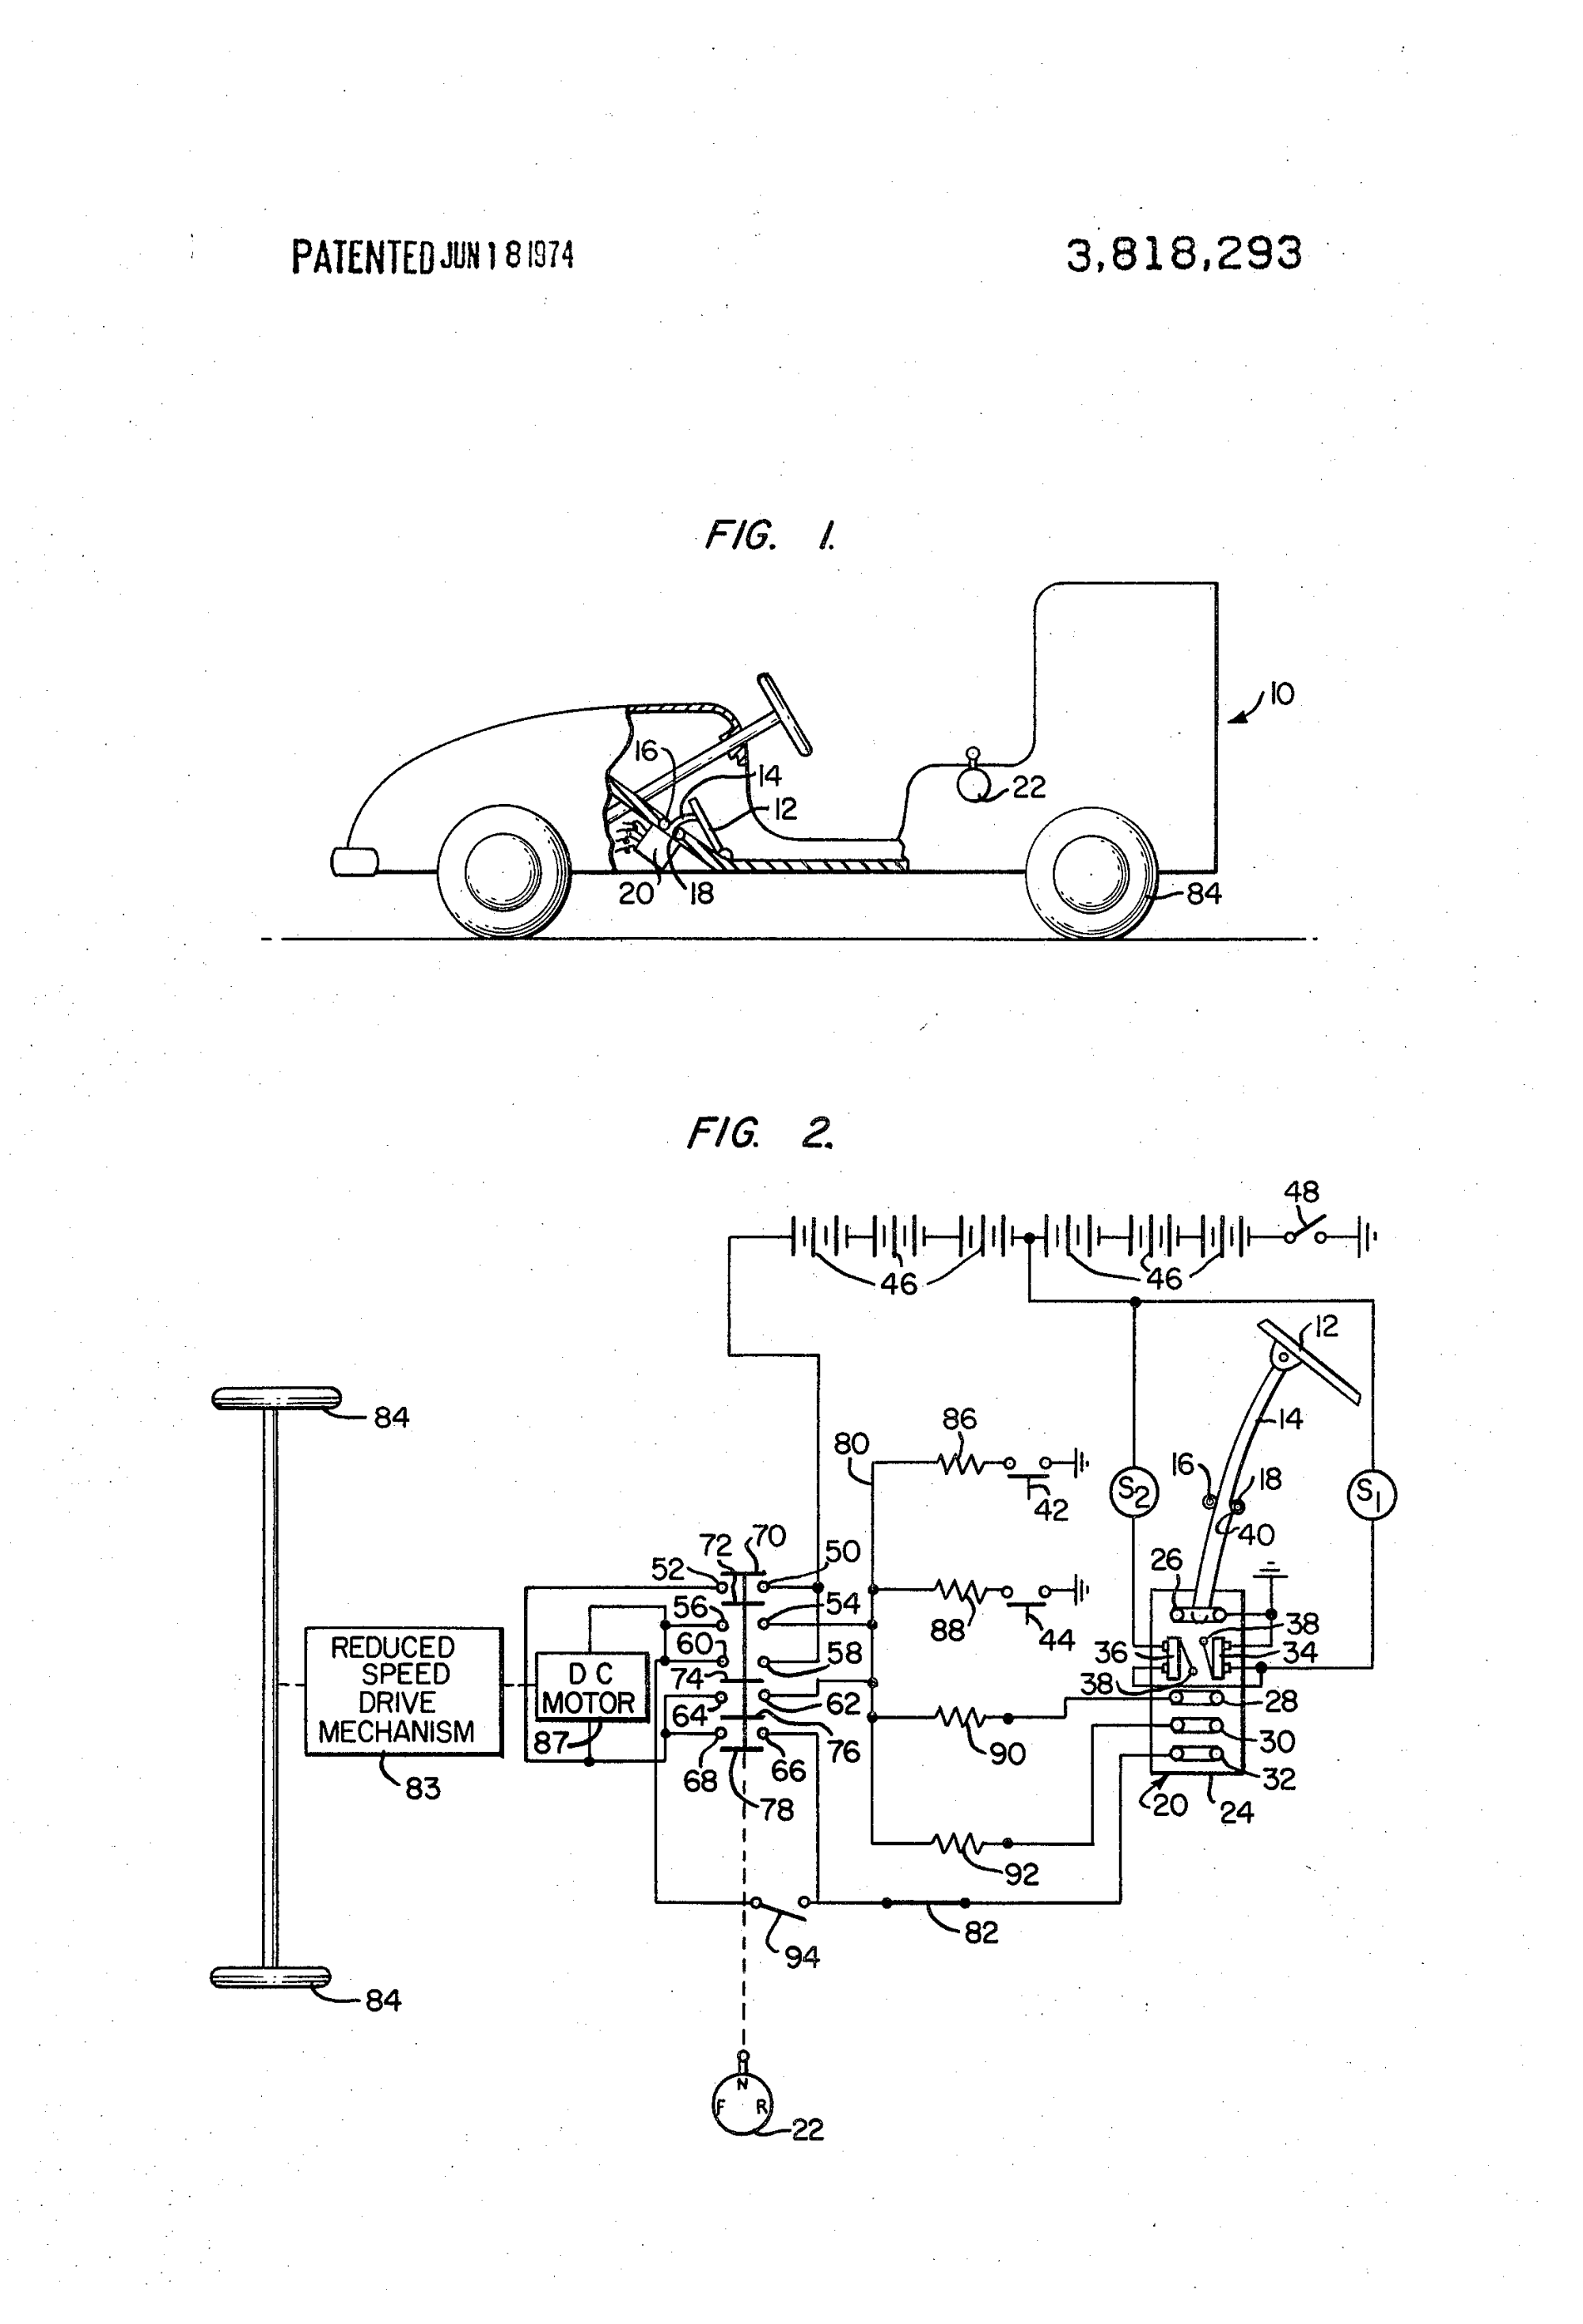 hight resolution of par car ignition switch wiring diagram 48 volt columbia par car with sevcon controller